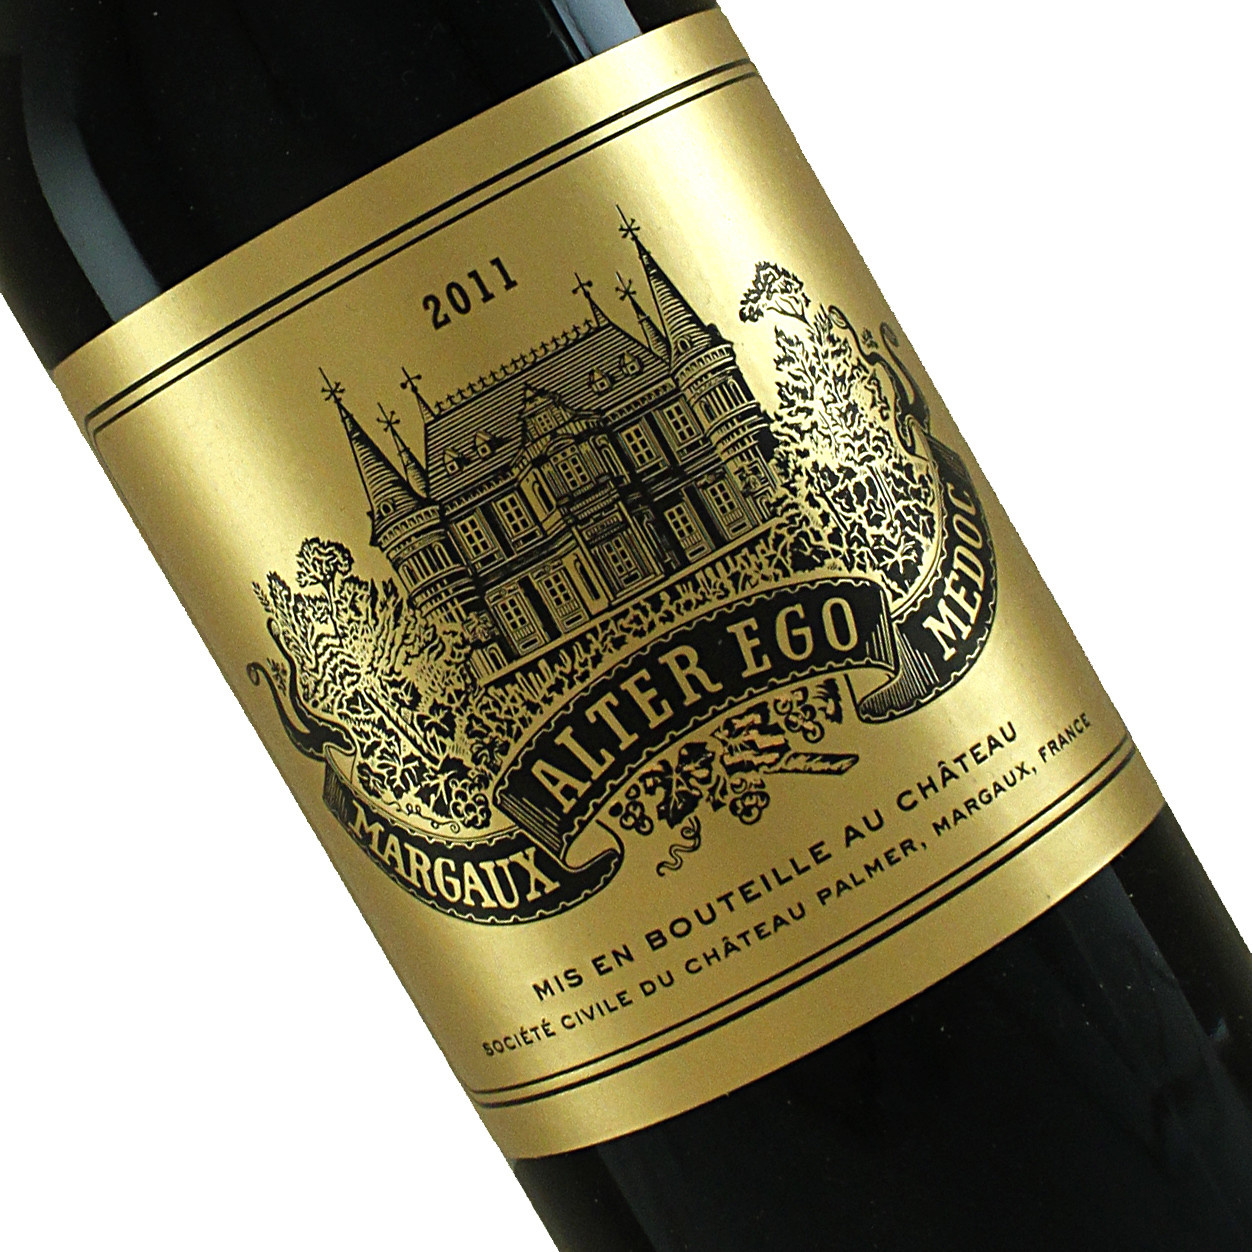 Alter Ego from Chateau Palmer 2011 Margaux